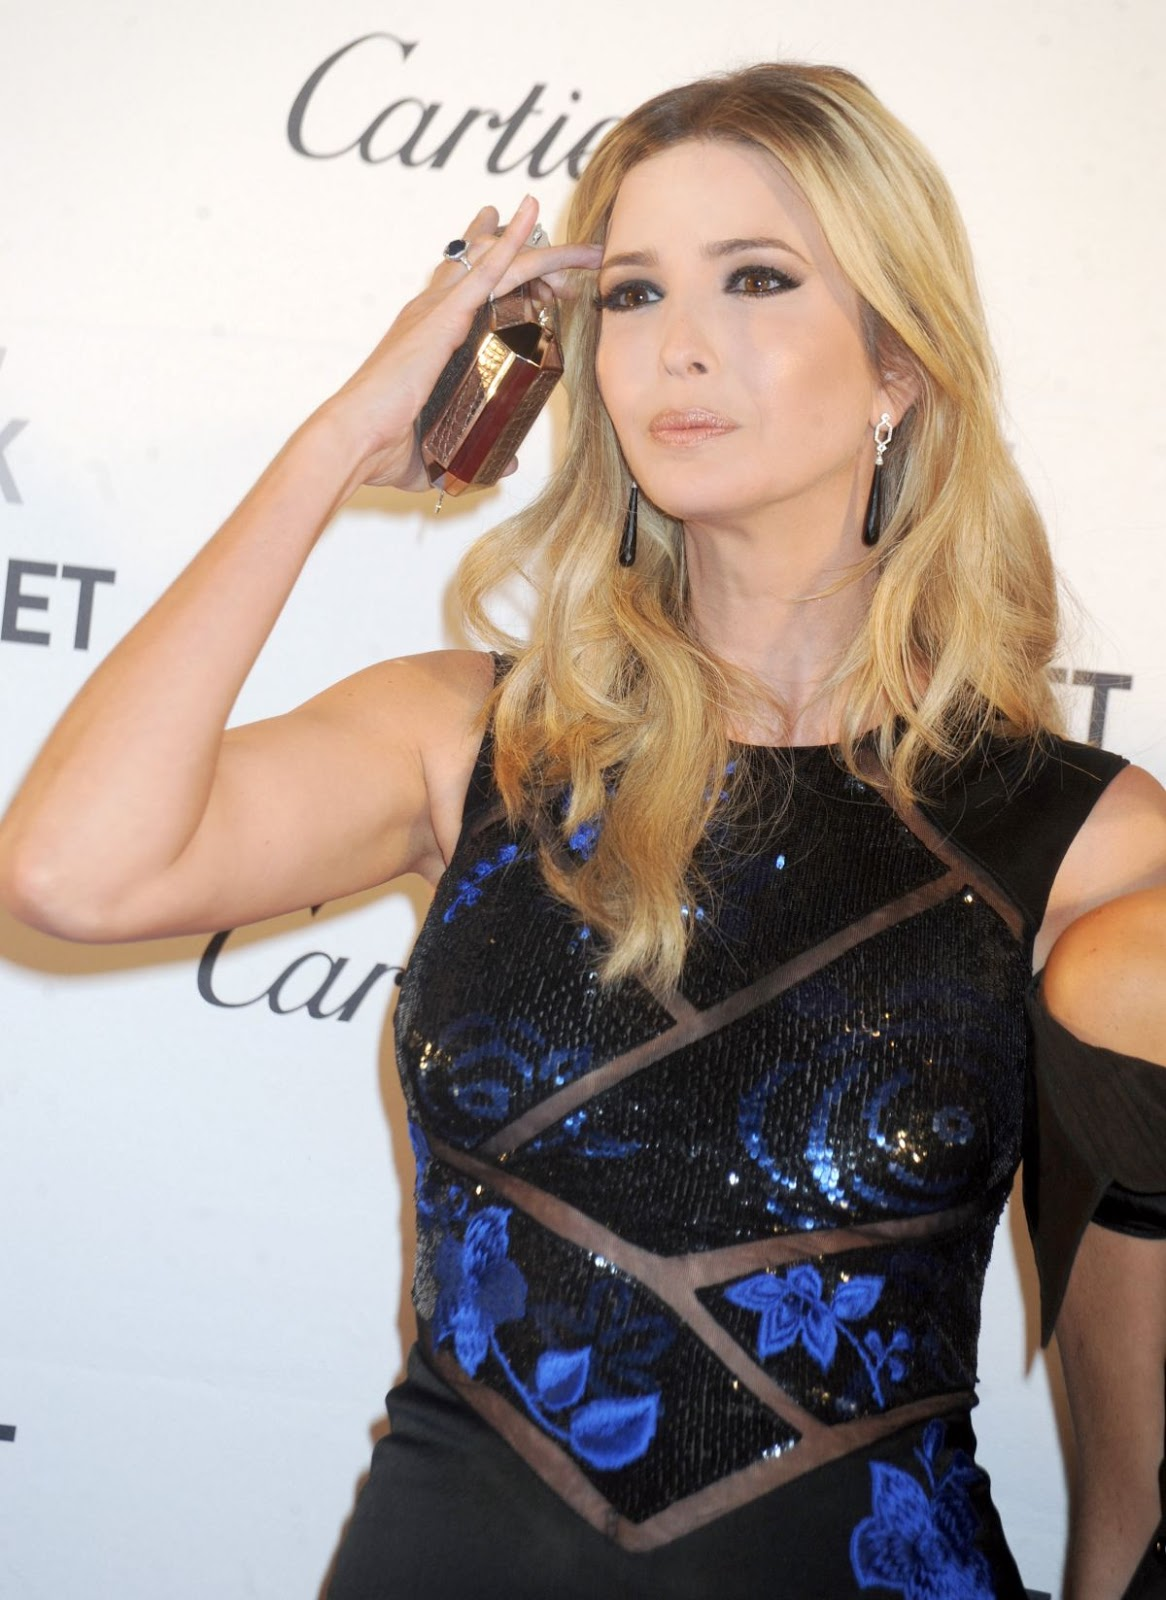 NYCB HQ Photos: Ivanka Trump at 2015 New York City Ballet Fall Gala in New York